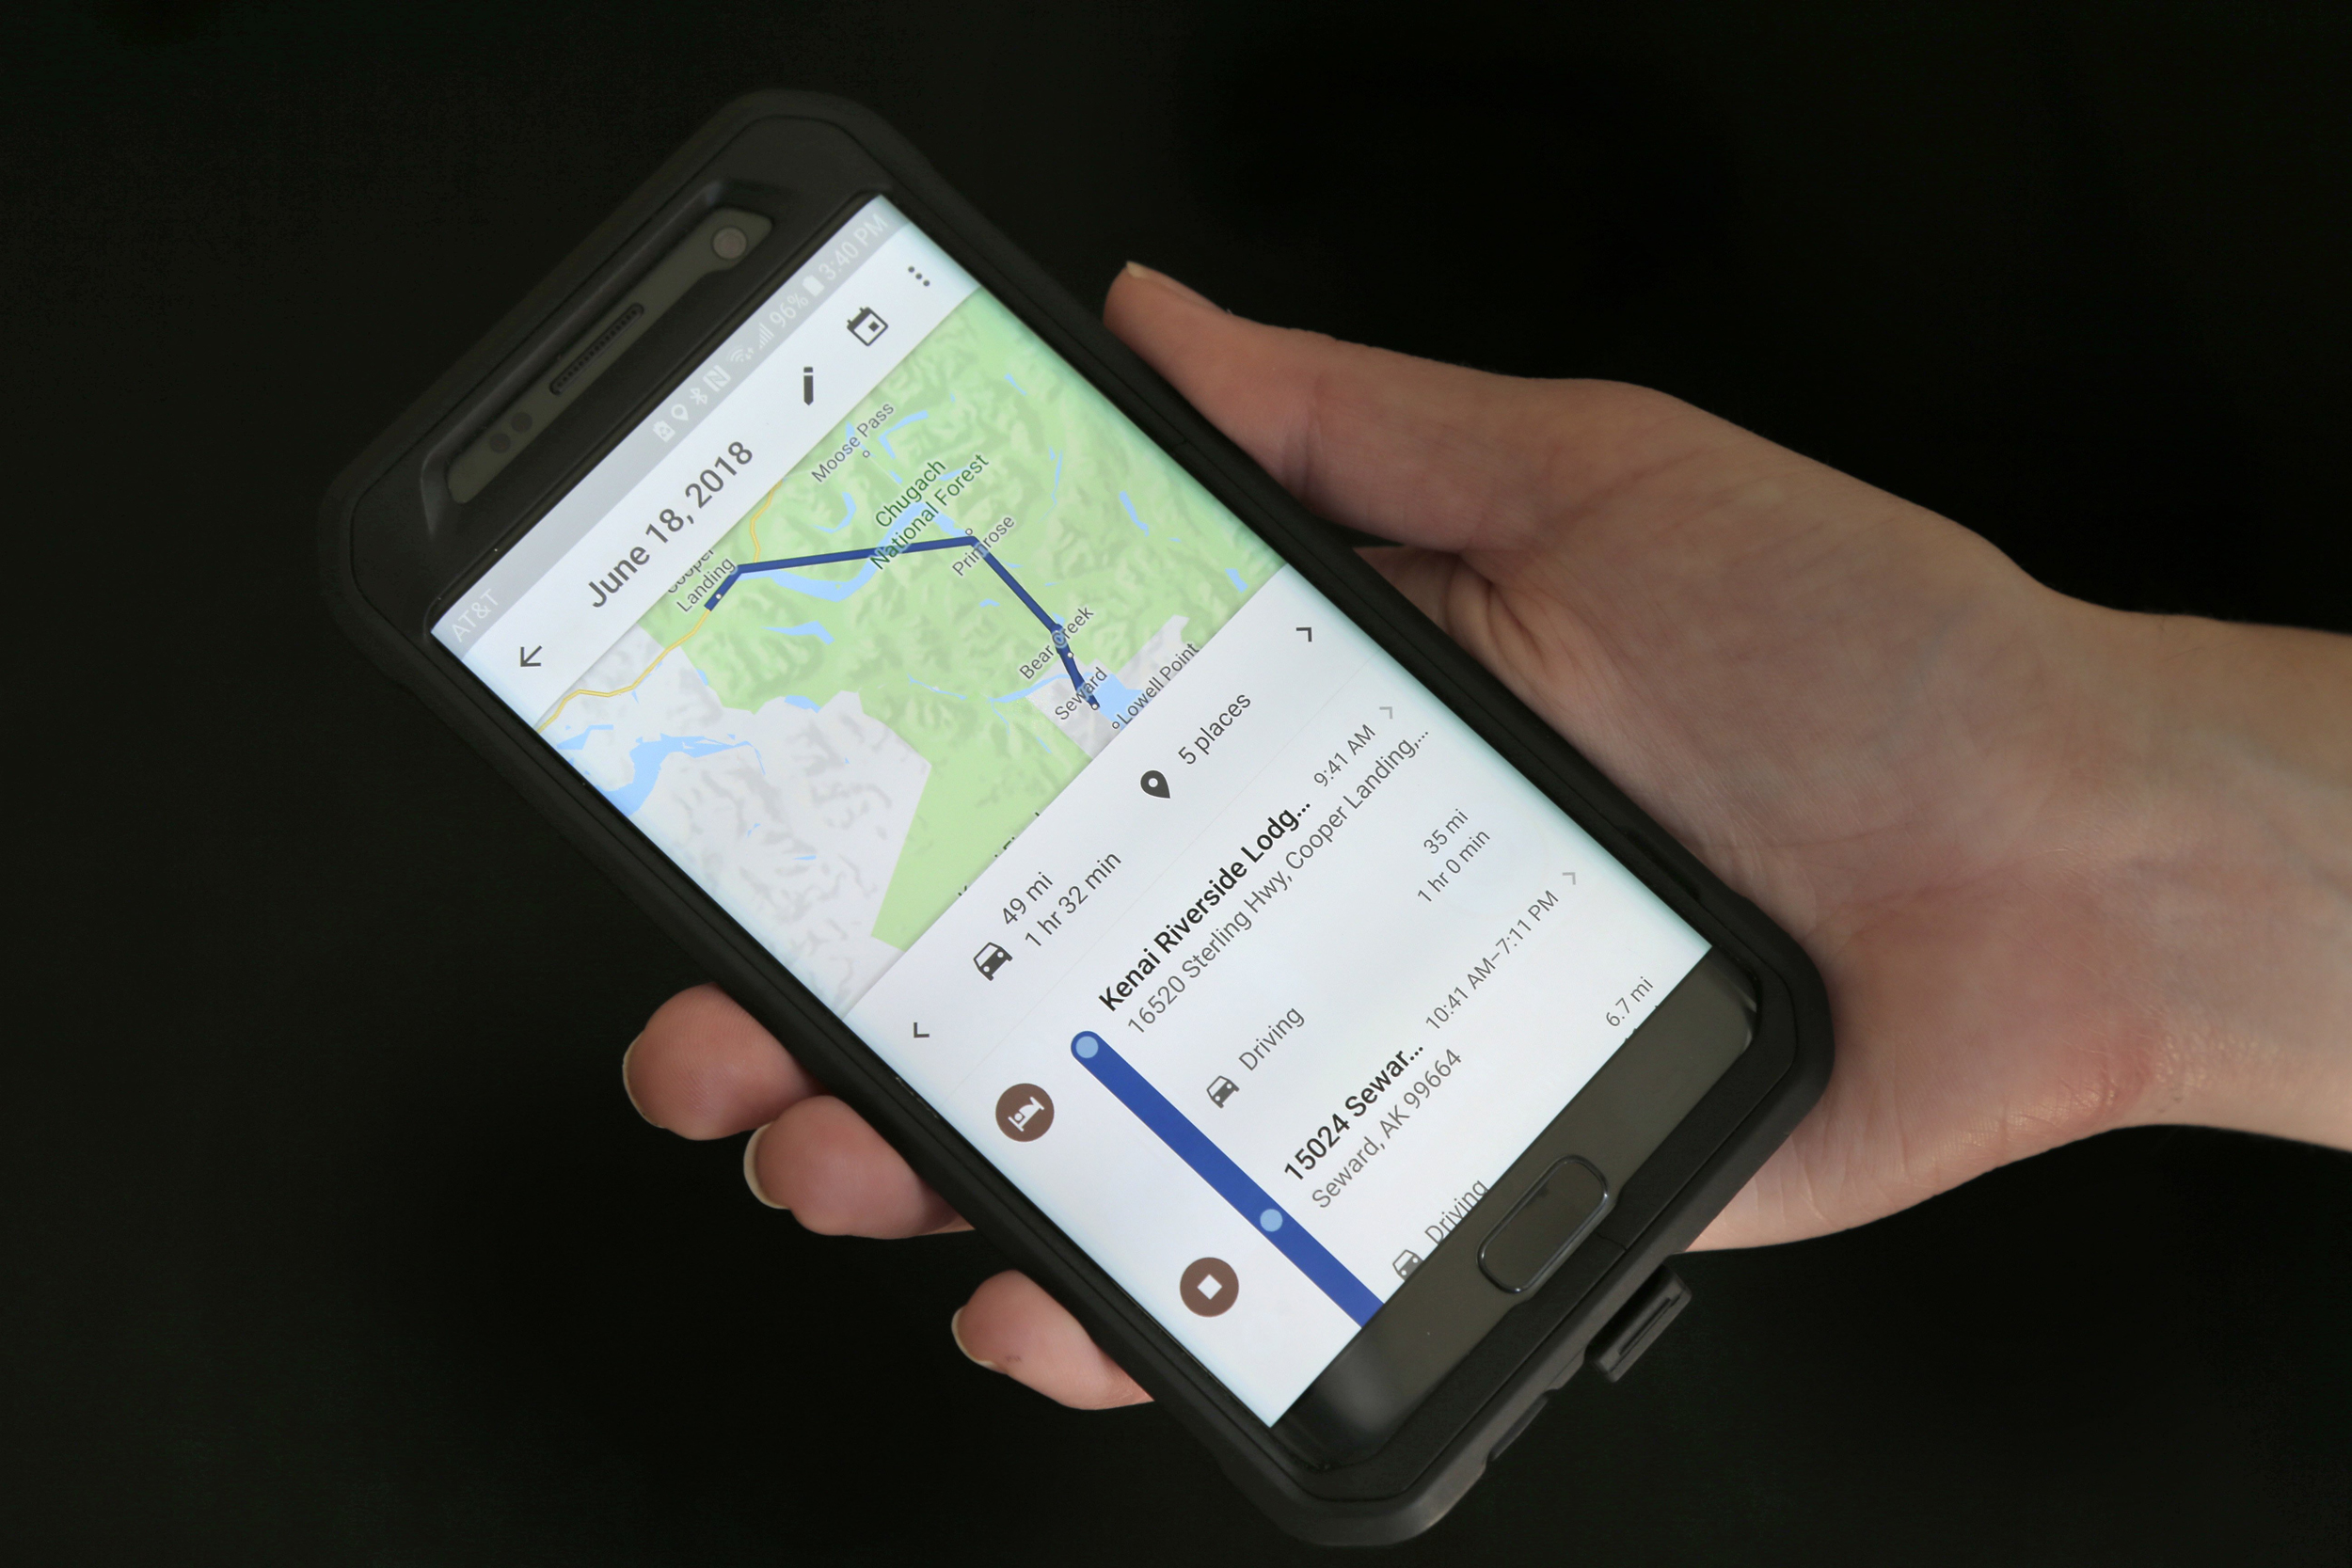 Google found to track the location of users who have opted out